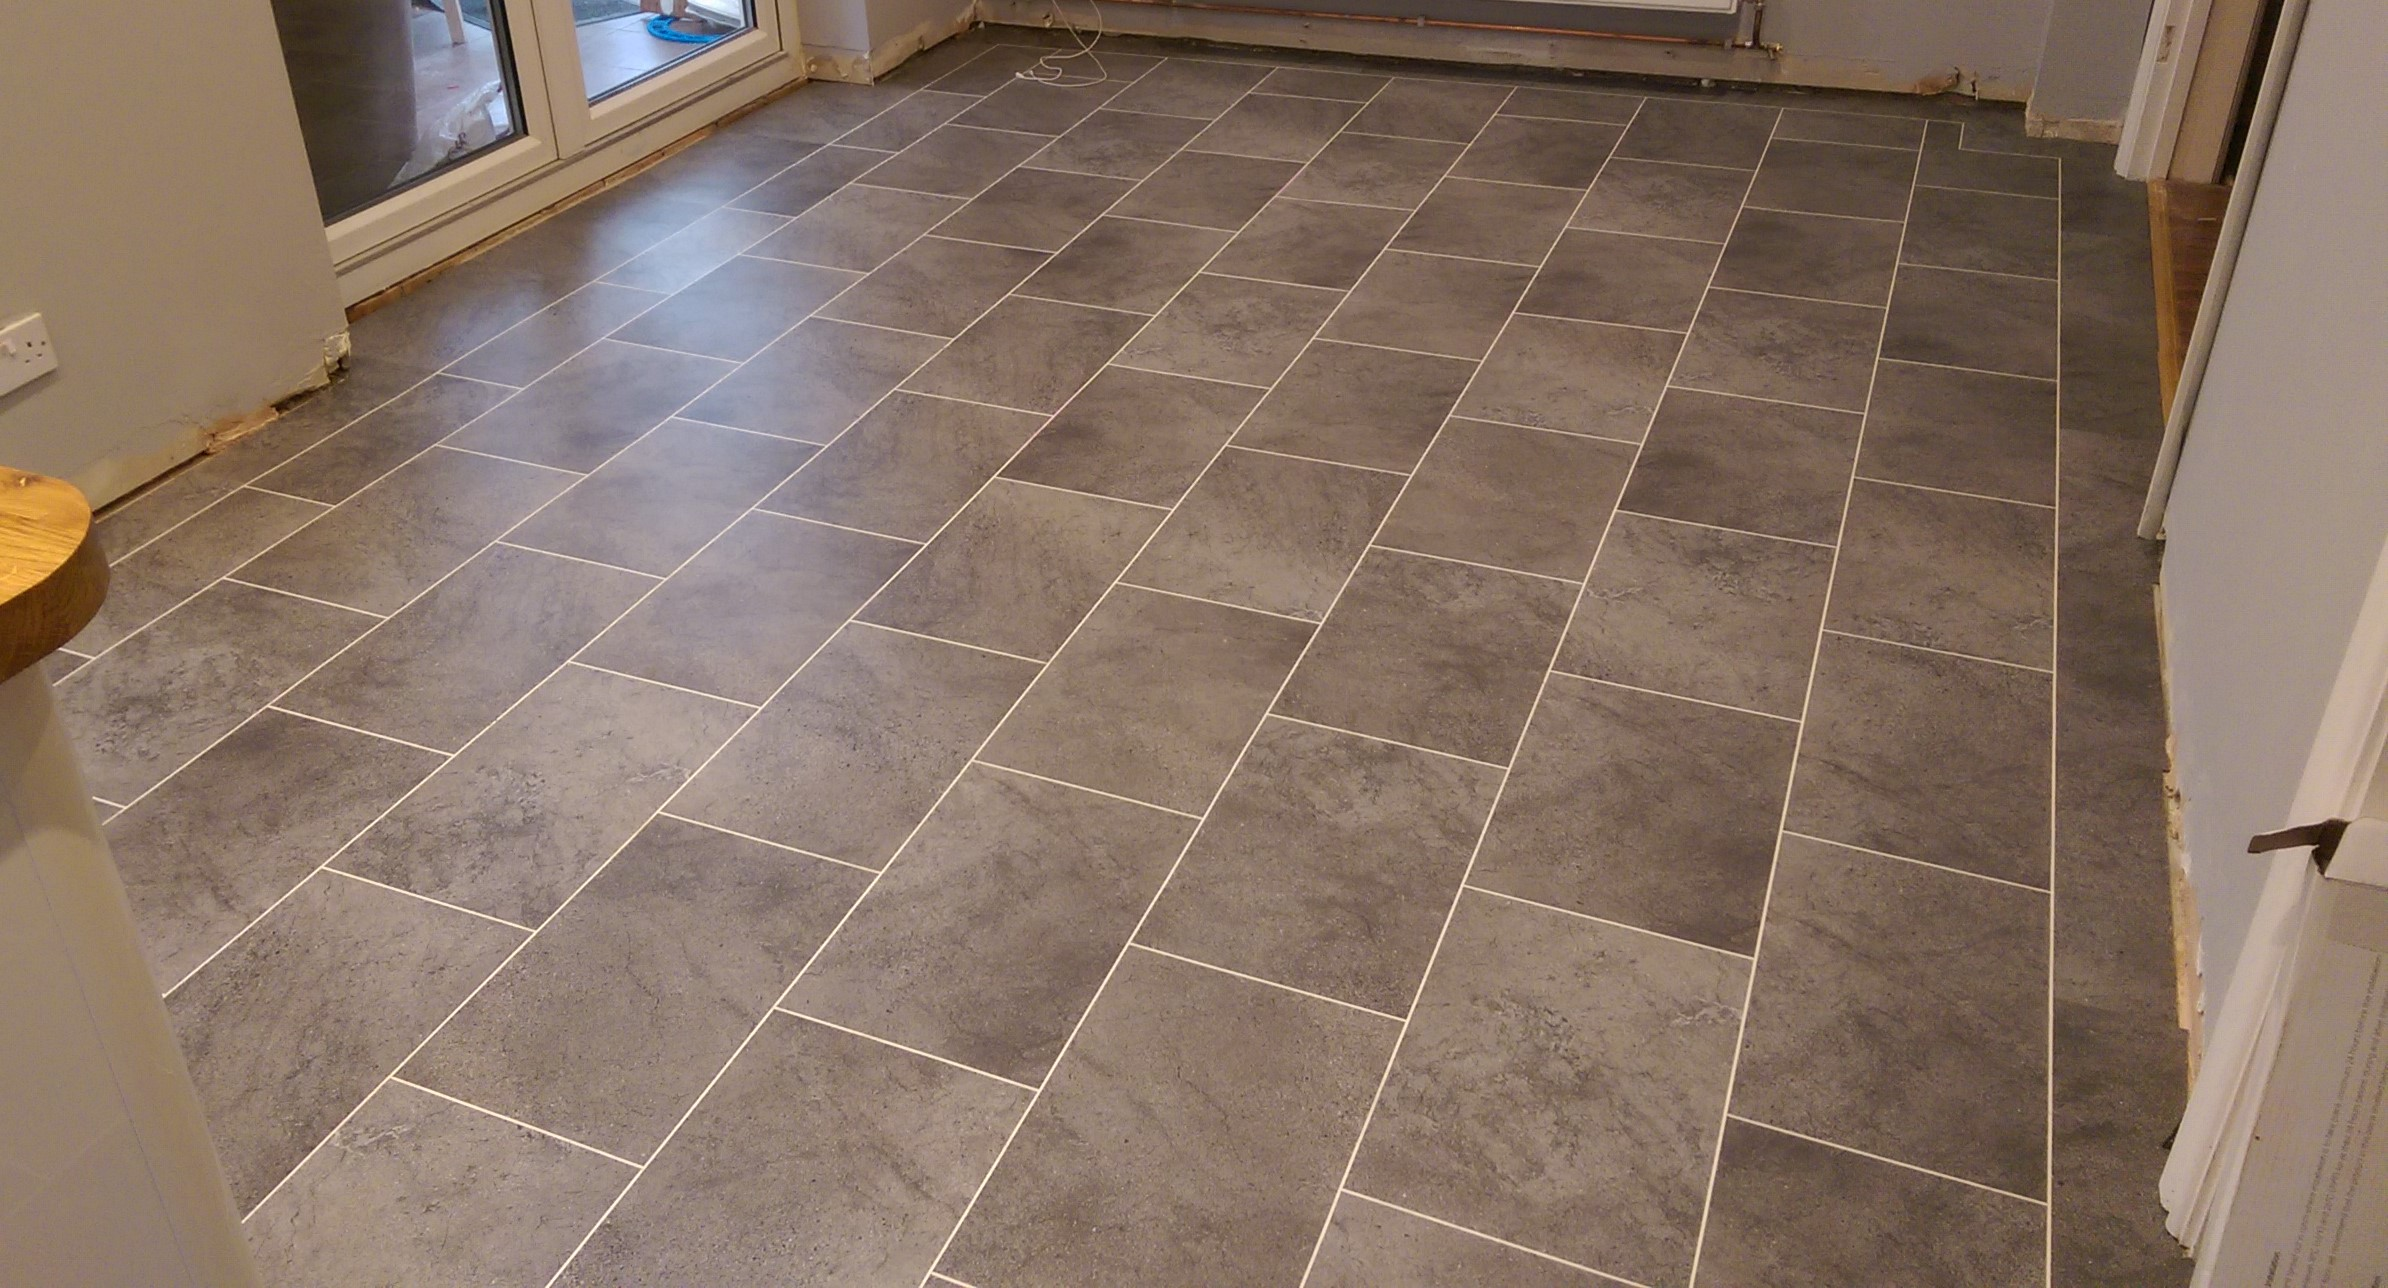 Karndean Knight Tile - Cumbrian Stone 3